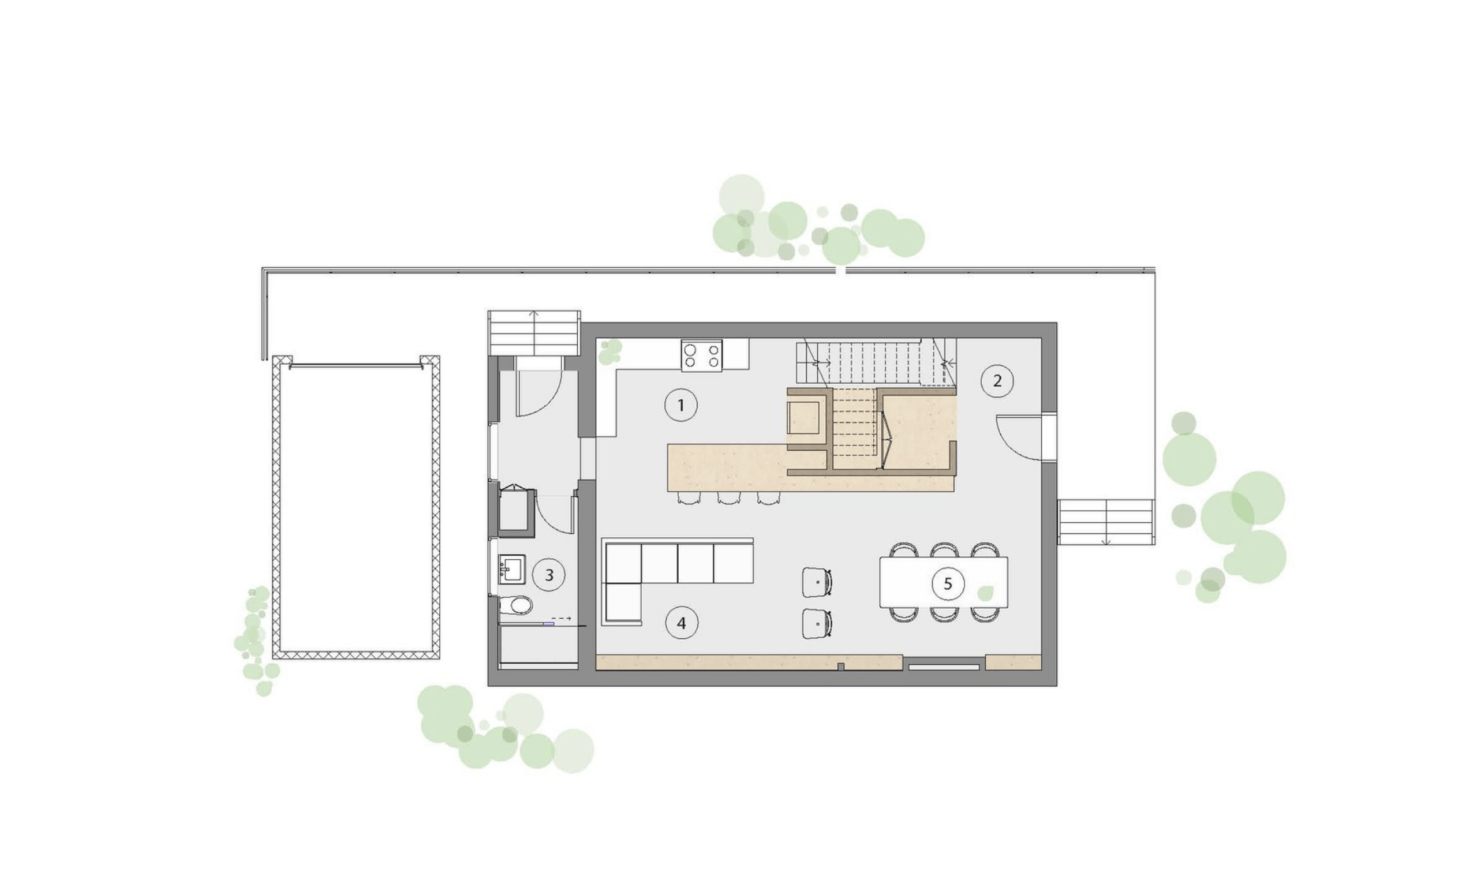 Studio AC was tasked with remodeling a 1,500 square foot two-story house. The ground floor, shown here, has a dining and living area that surround the central kitchen/stair volume.